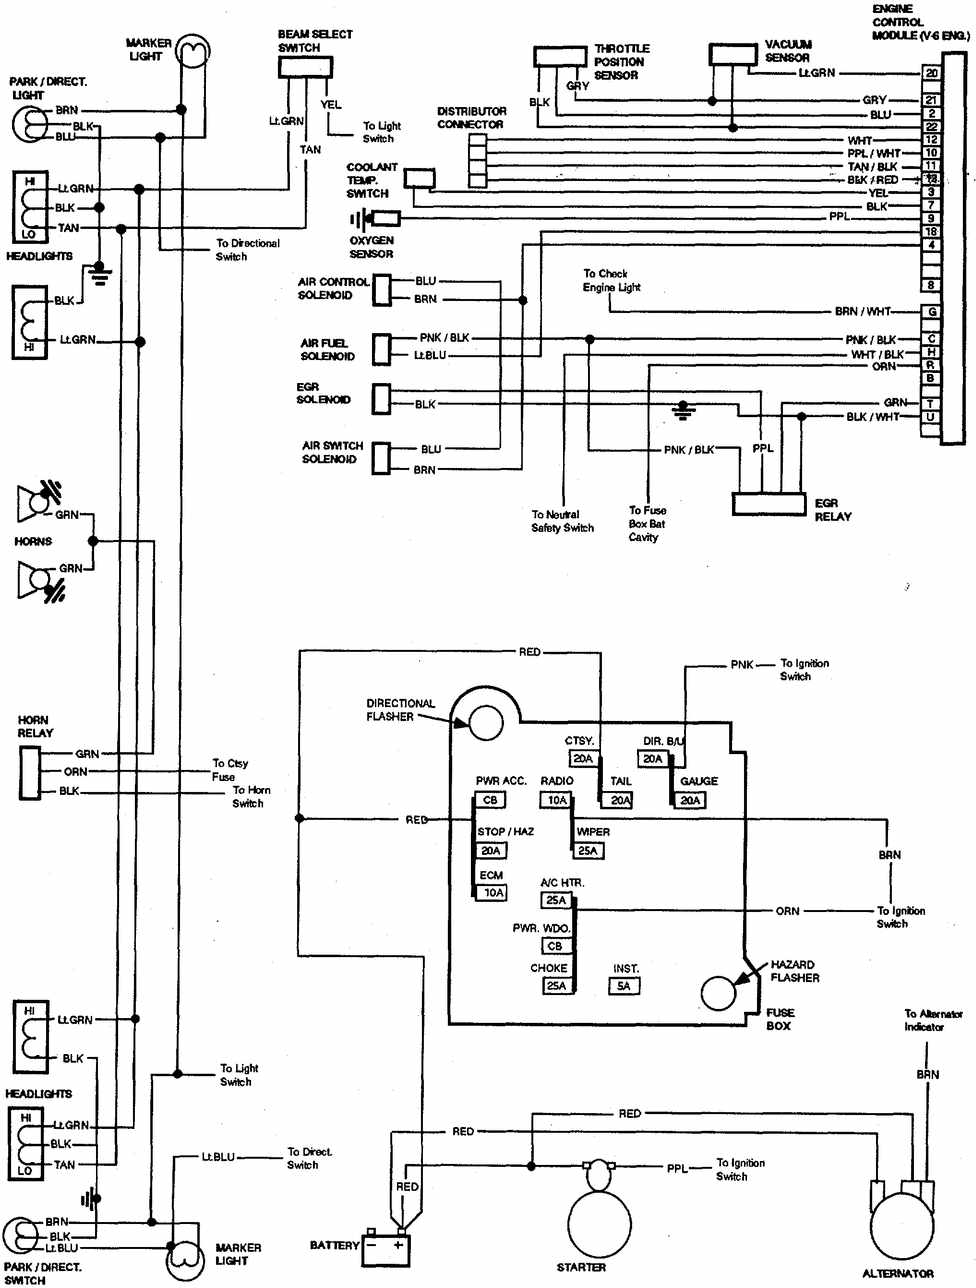 1986 chevy power window wiring diagram